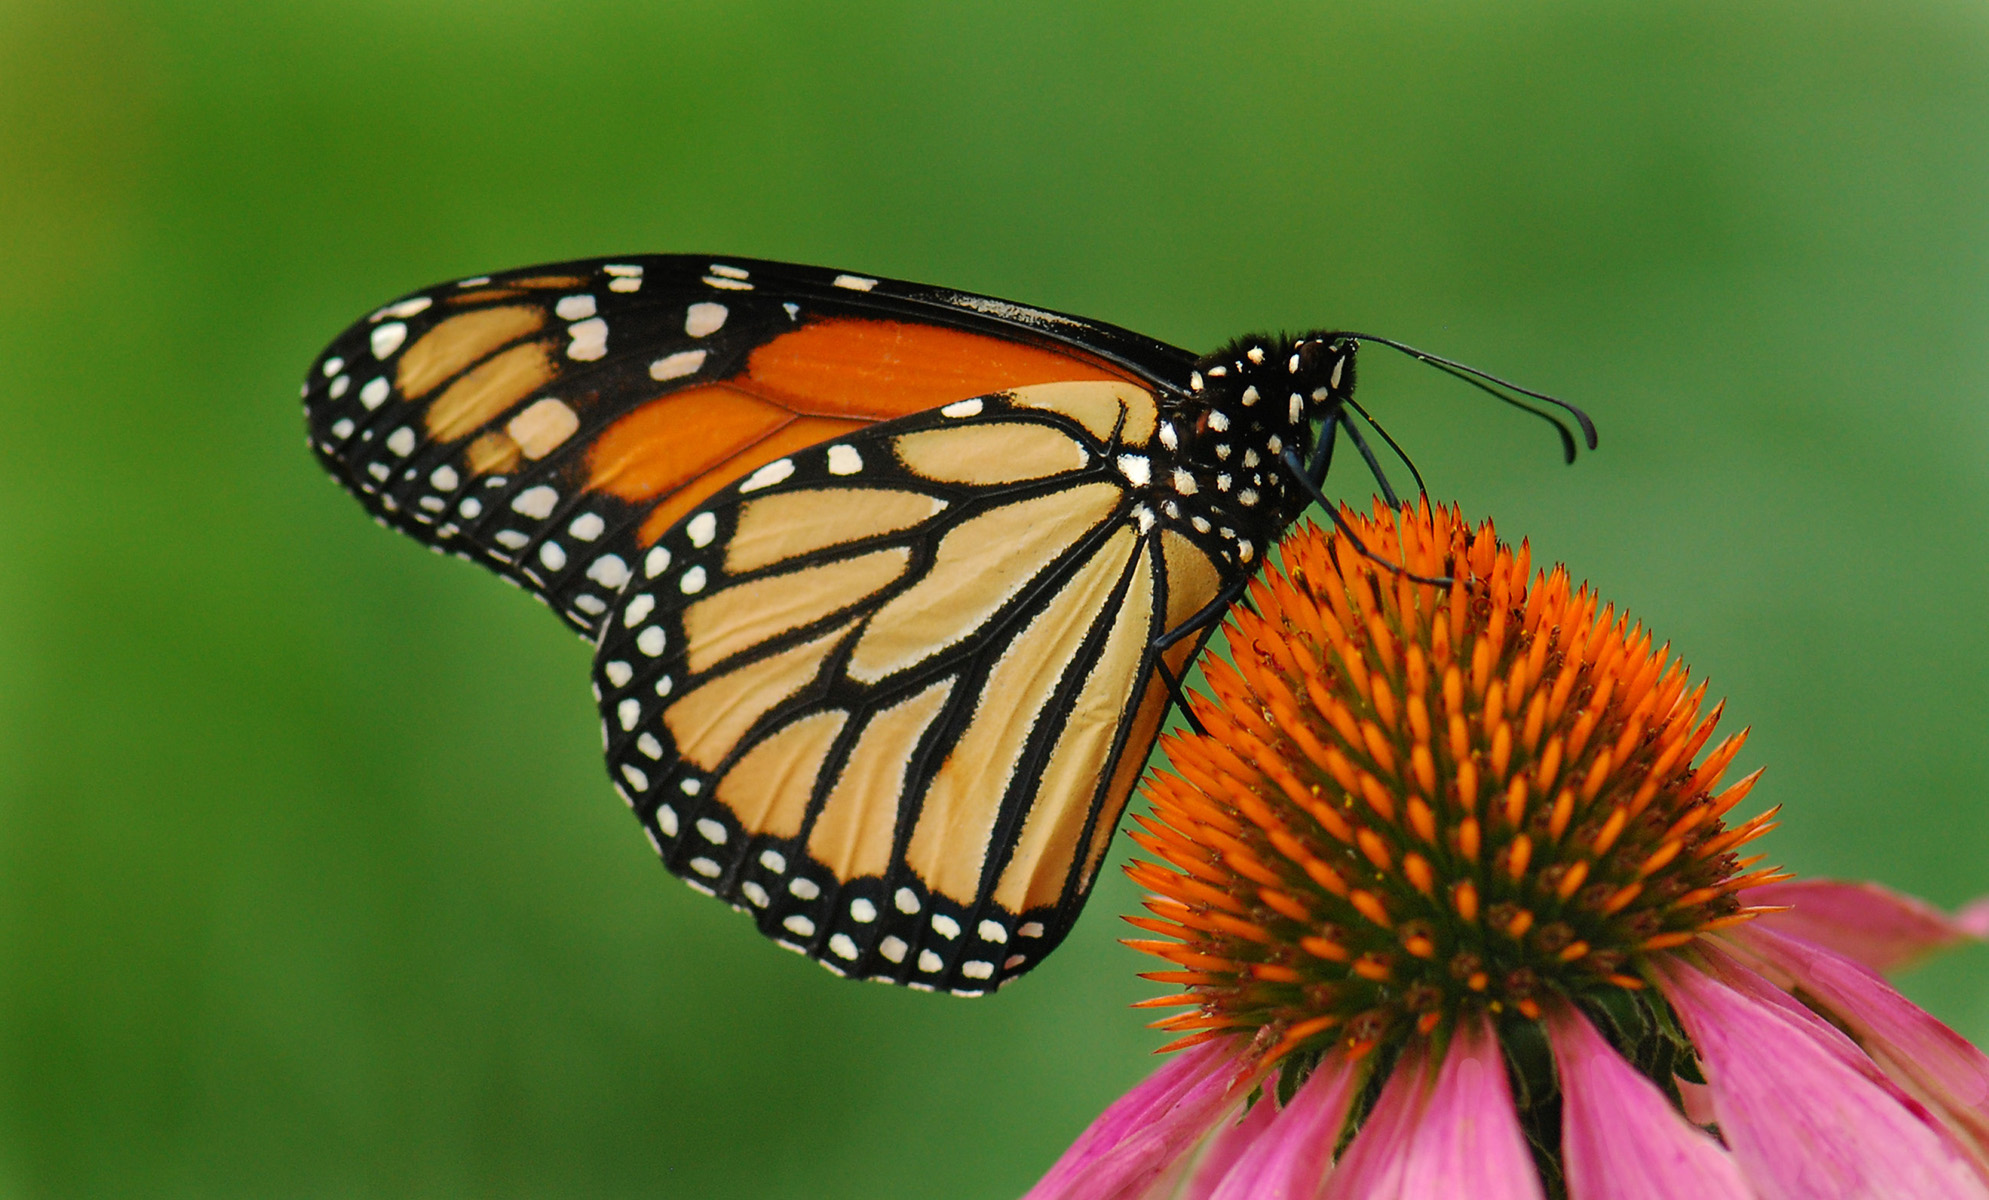 Texas Comptroller Announces Partnerships with Texas A&M, Sam Houston State University to Study Monarch Butterfly